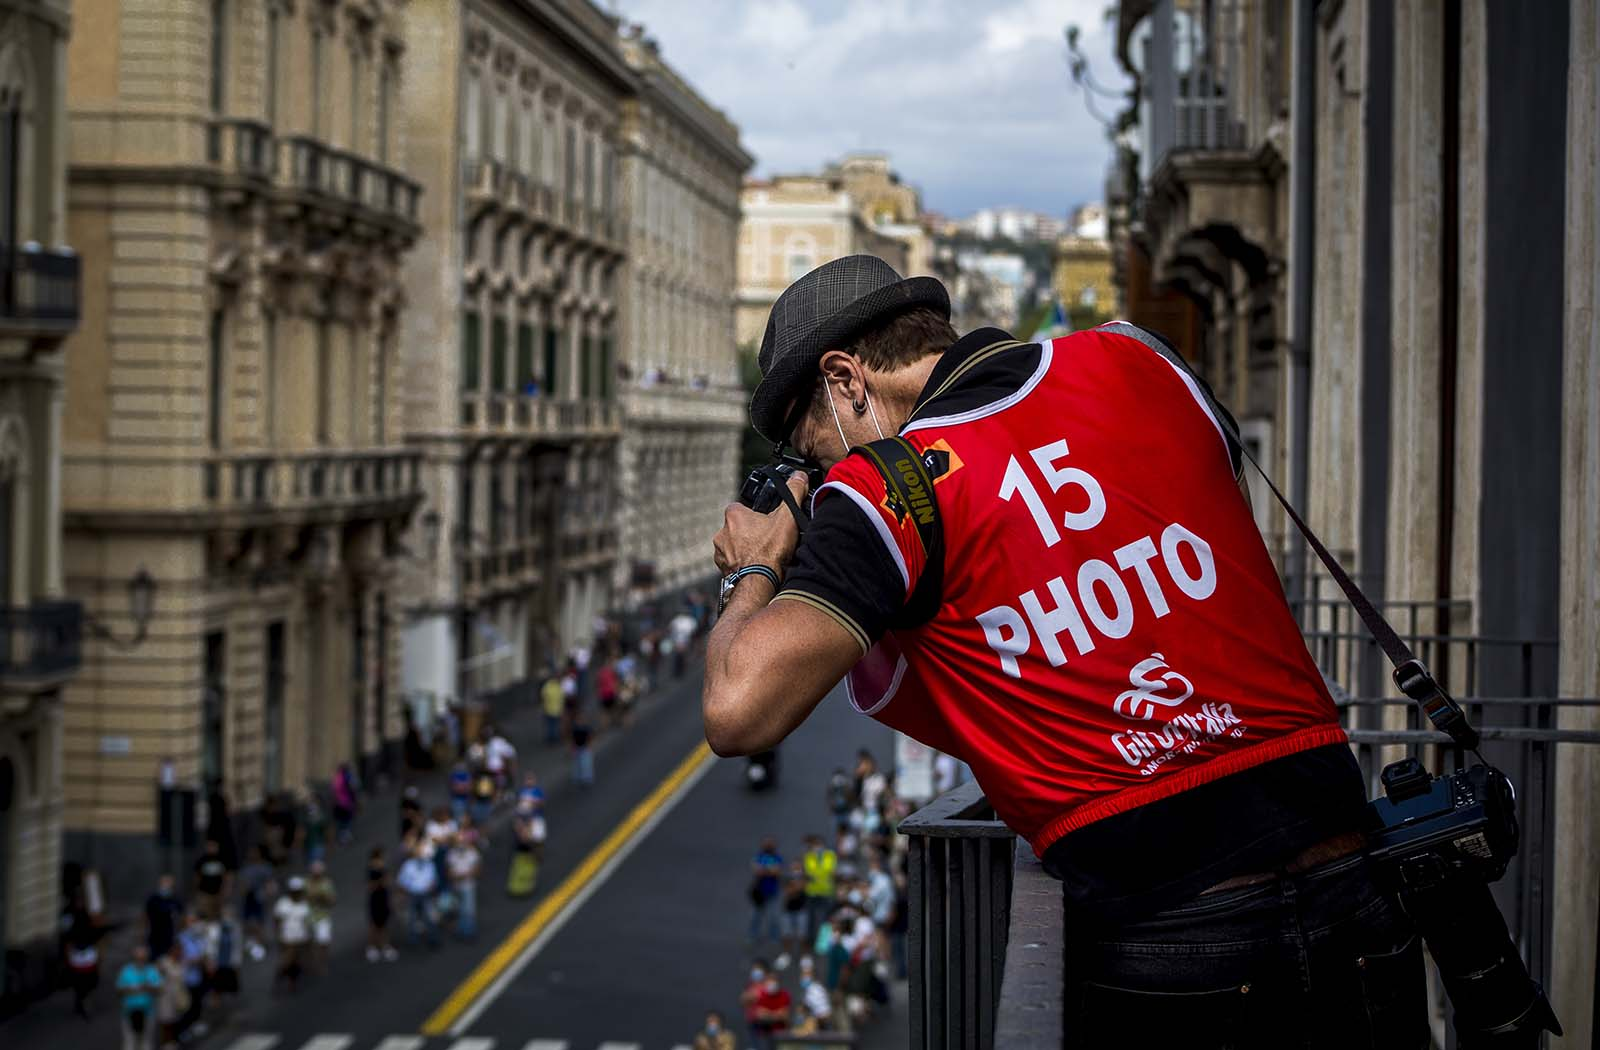 James Startt shoting the Giro d'Italia in Catania, Sicily